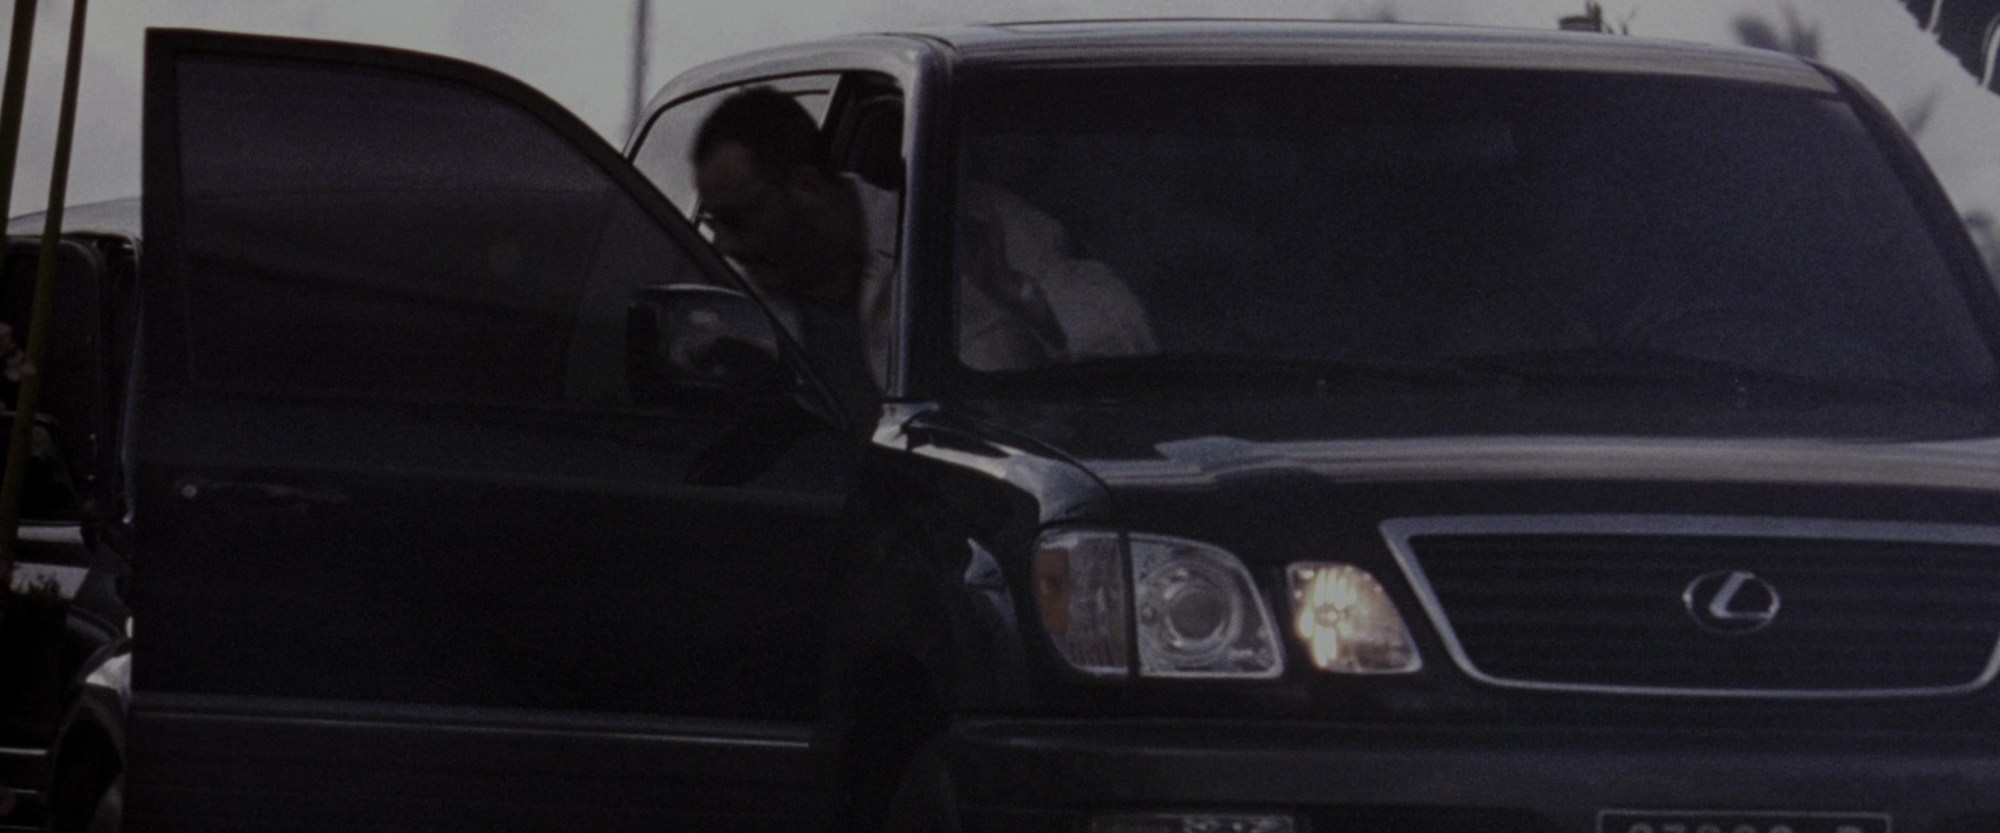 hight resolution of lexus lx 470 suv in godzilla 1998